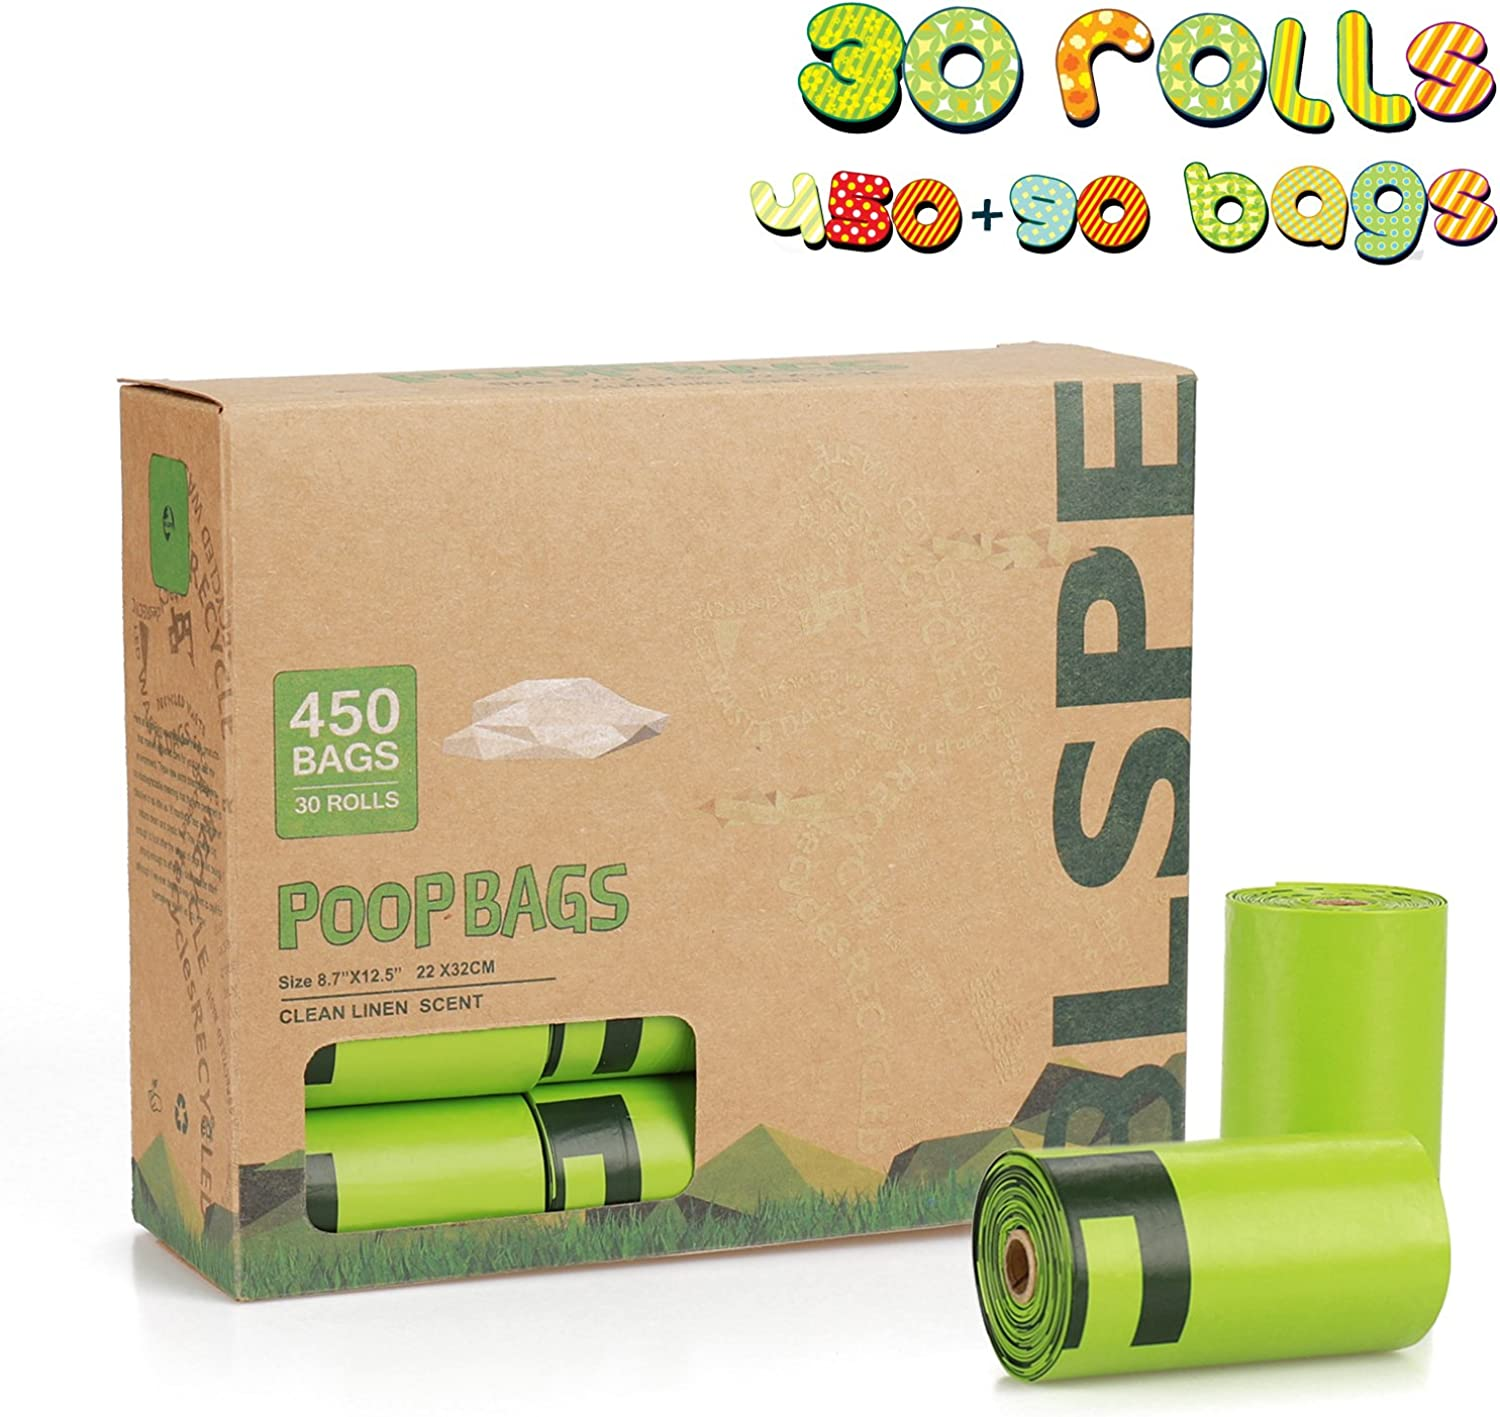 BLSPE Dog Pet Waste Poop Bags (450 Counts 30 Rolls, Scented), Pet Supply, Biodegradable, Refill Rolls, 90 Bags Added